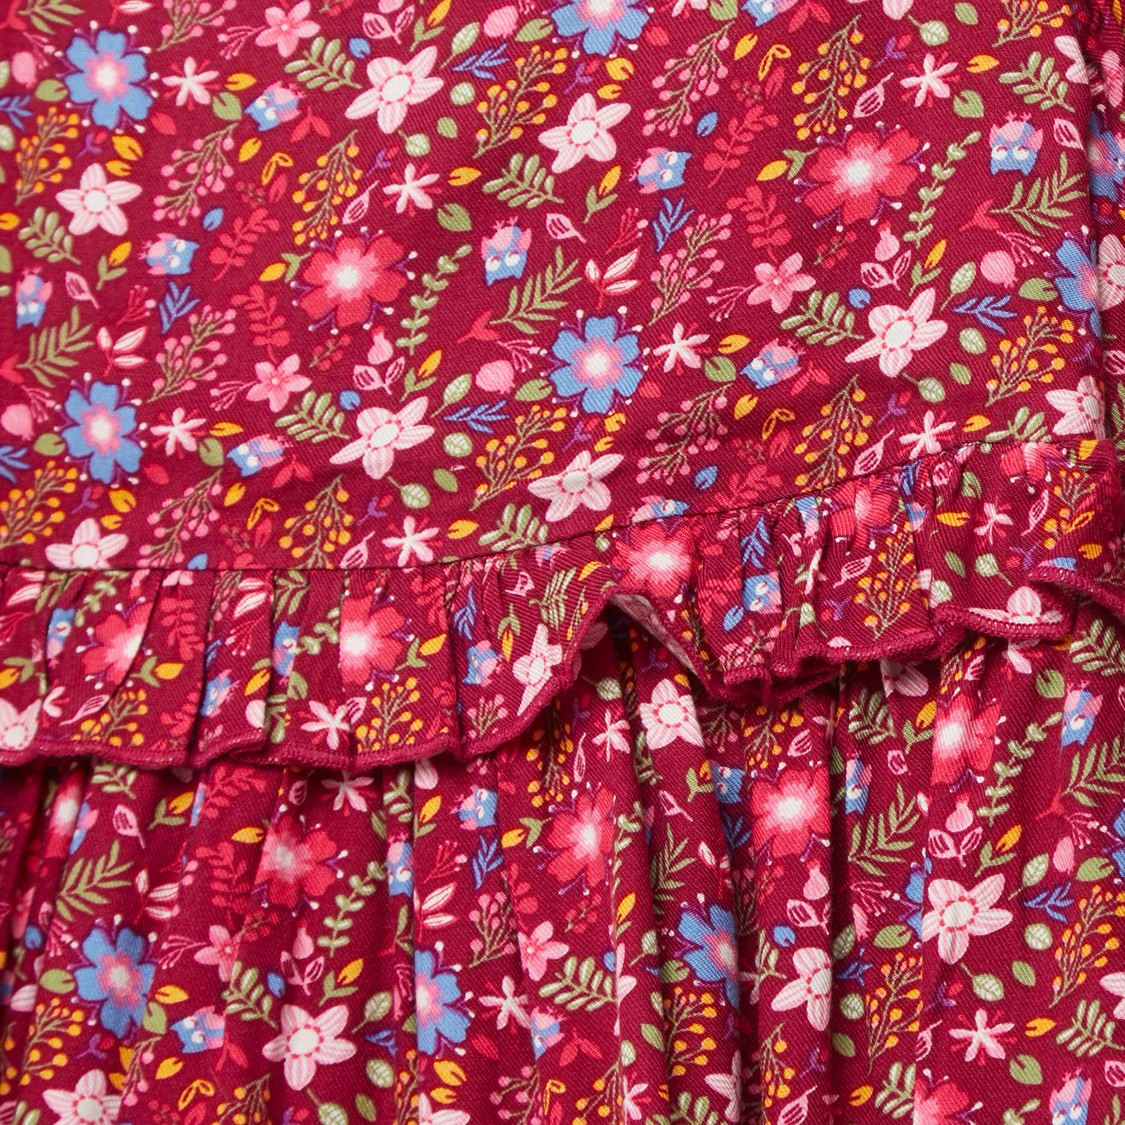 All-Over Floral Print Midi Dress with Long Sleeves and Frill Detail